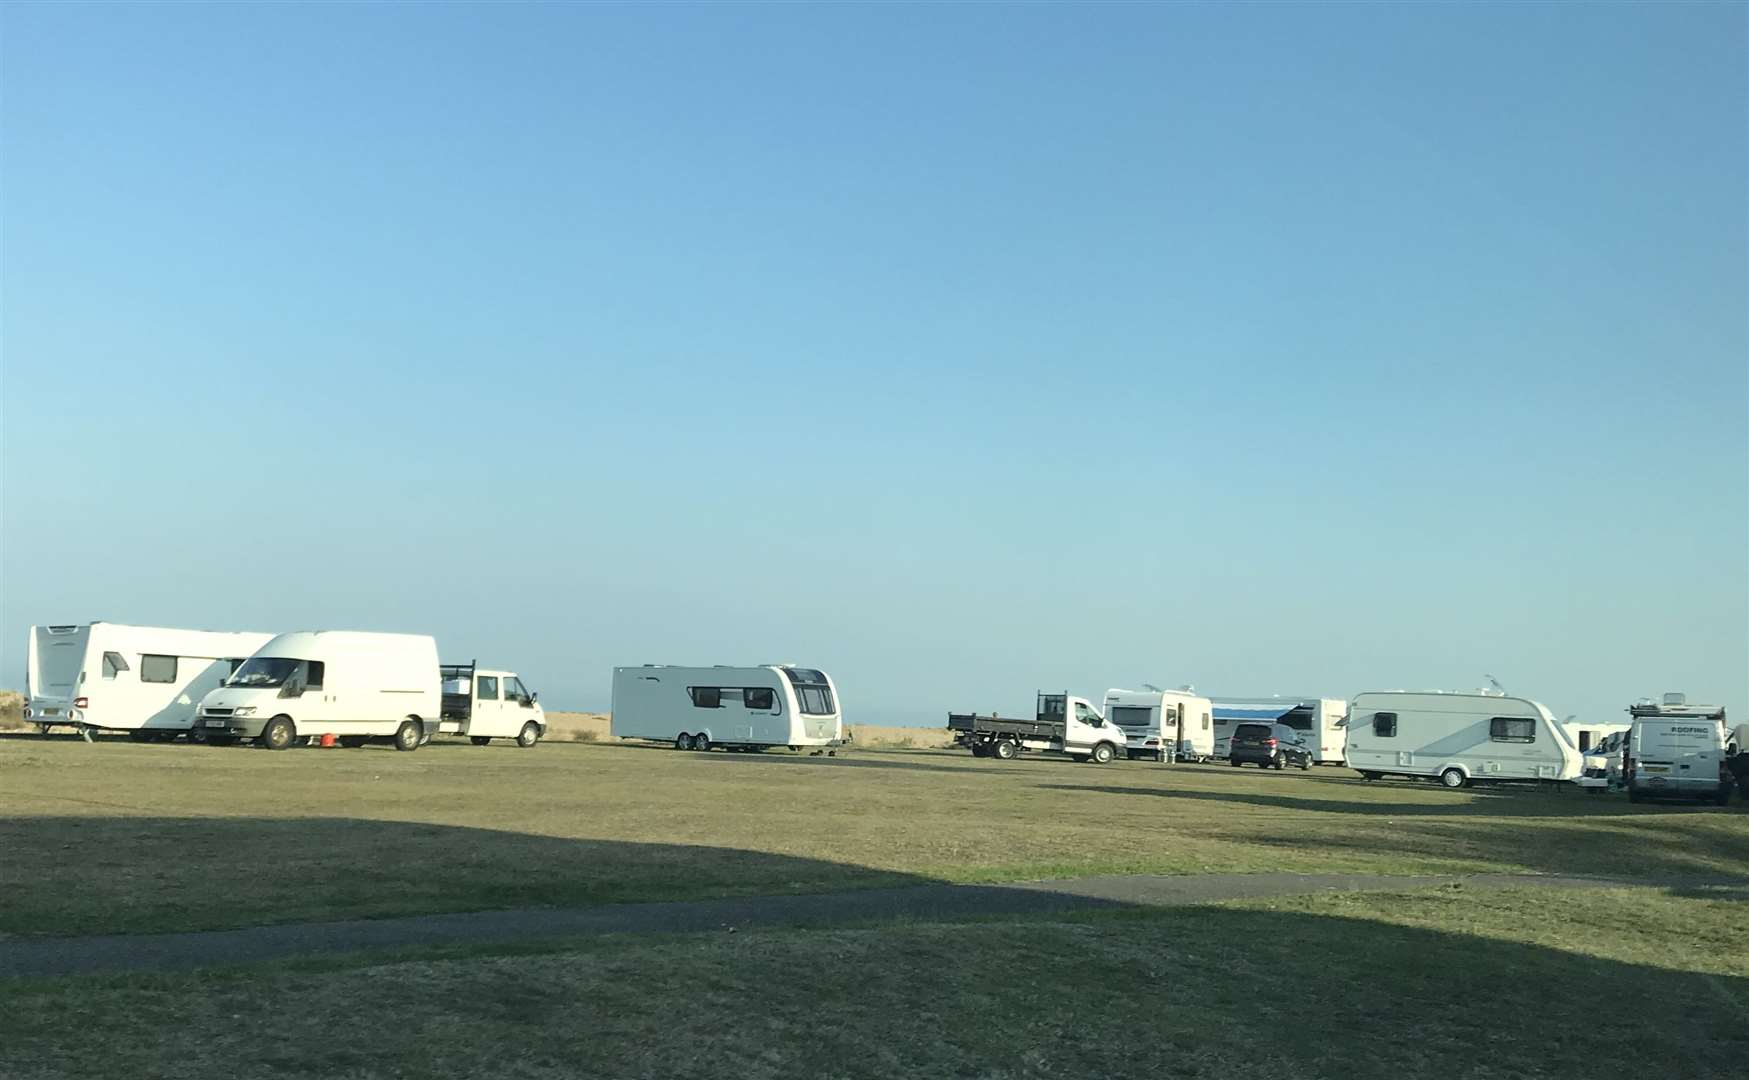 Travellers at Walmer Green in August